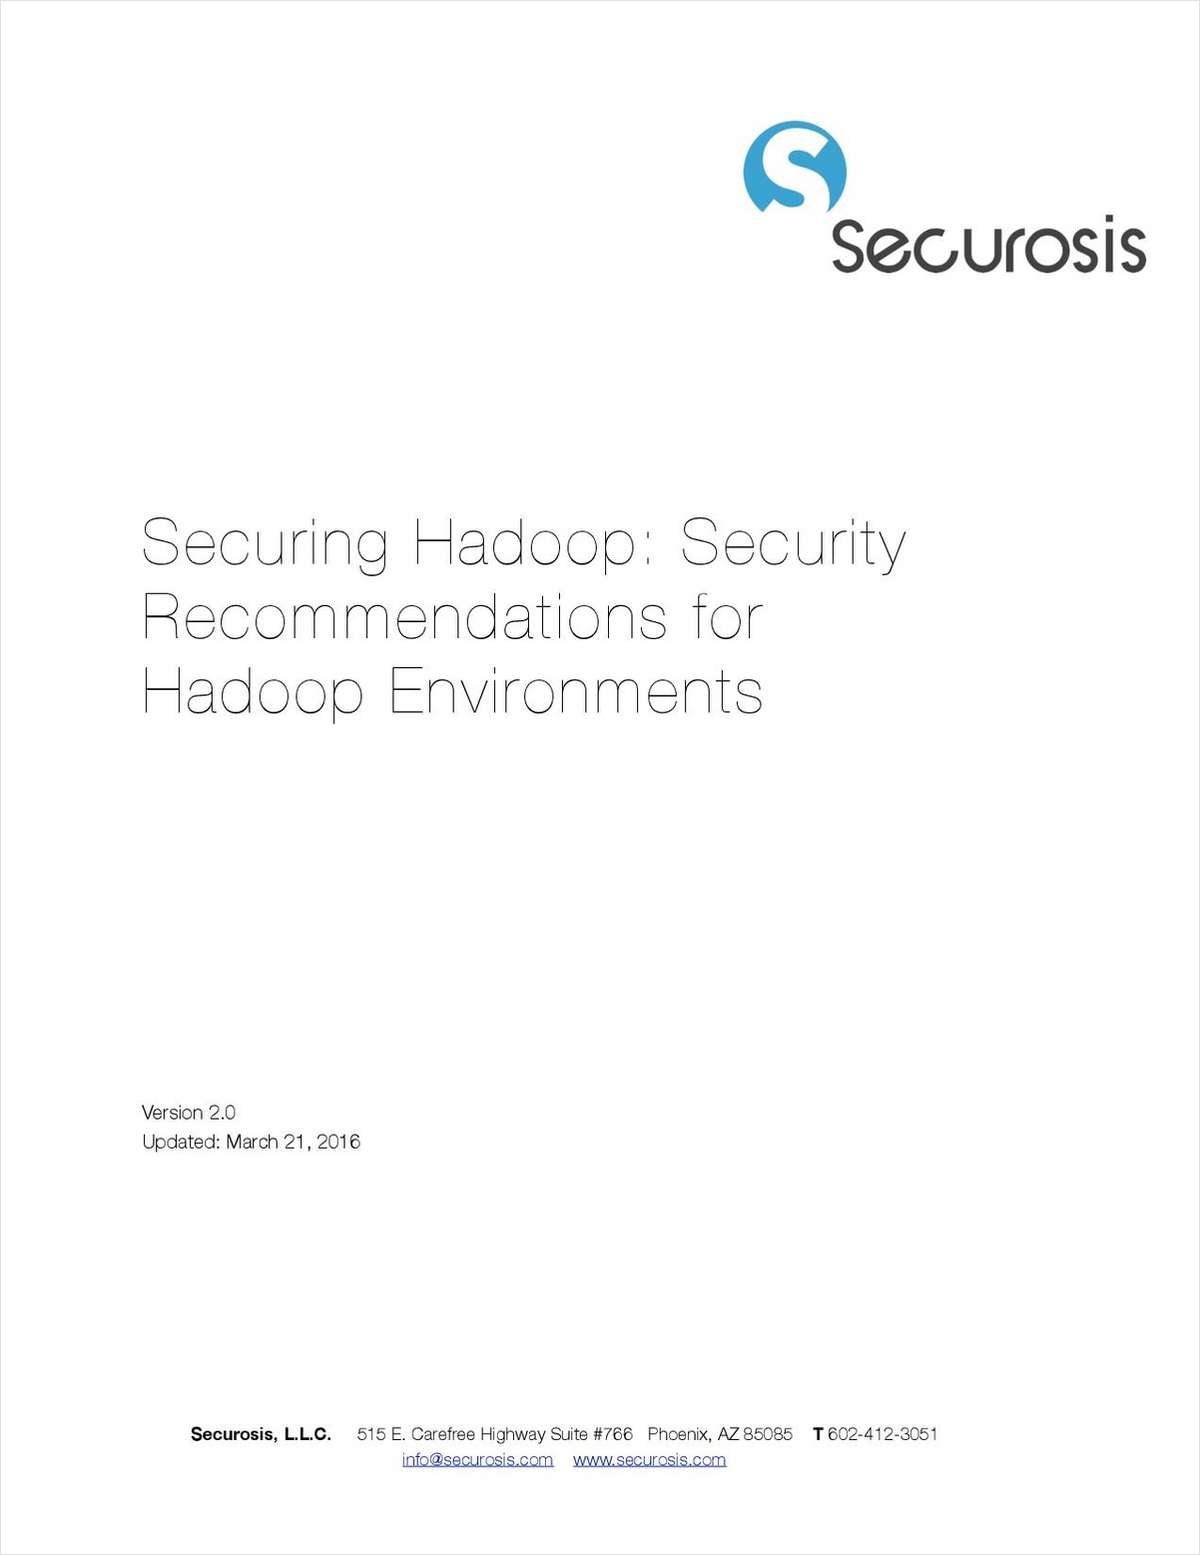 Securing Hadoop: Security Recommendations for Hadoop Environments